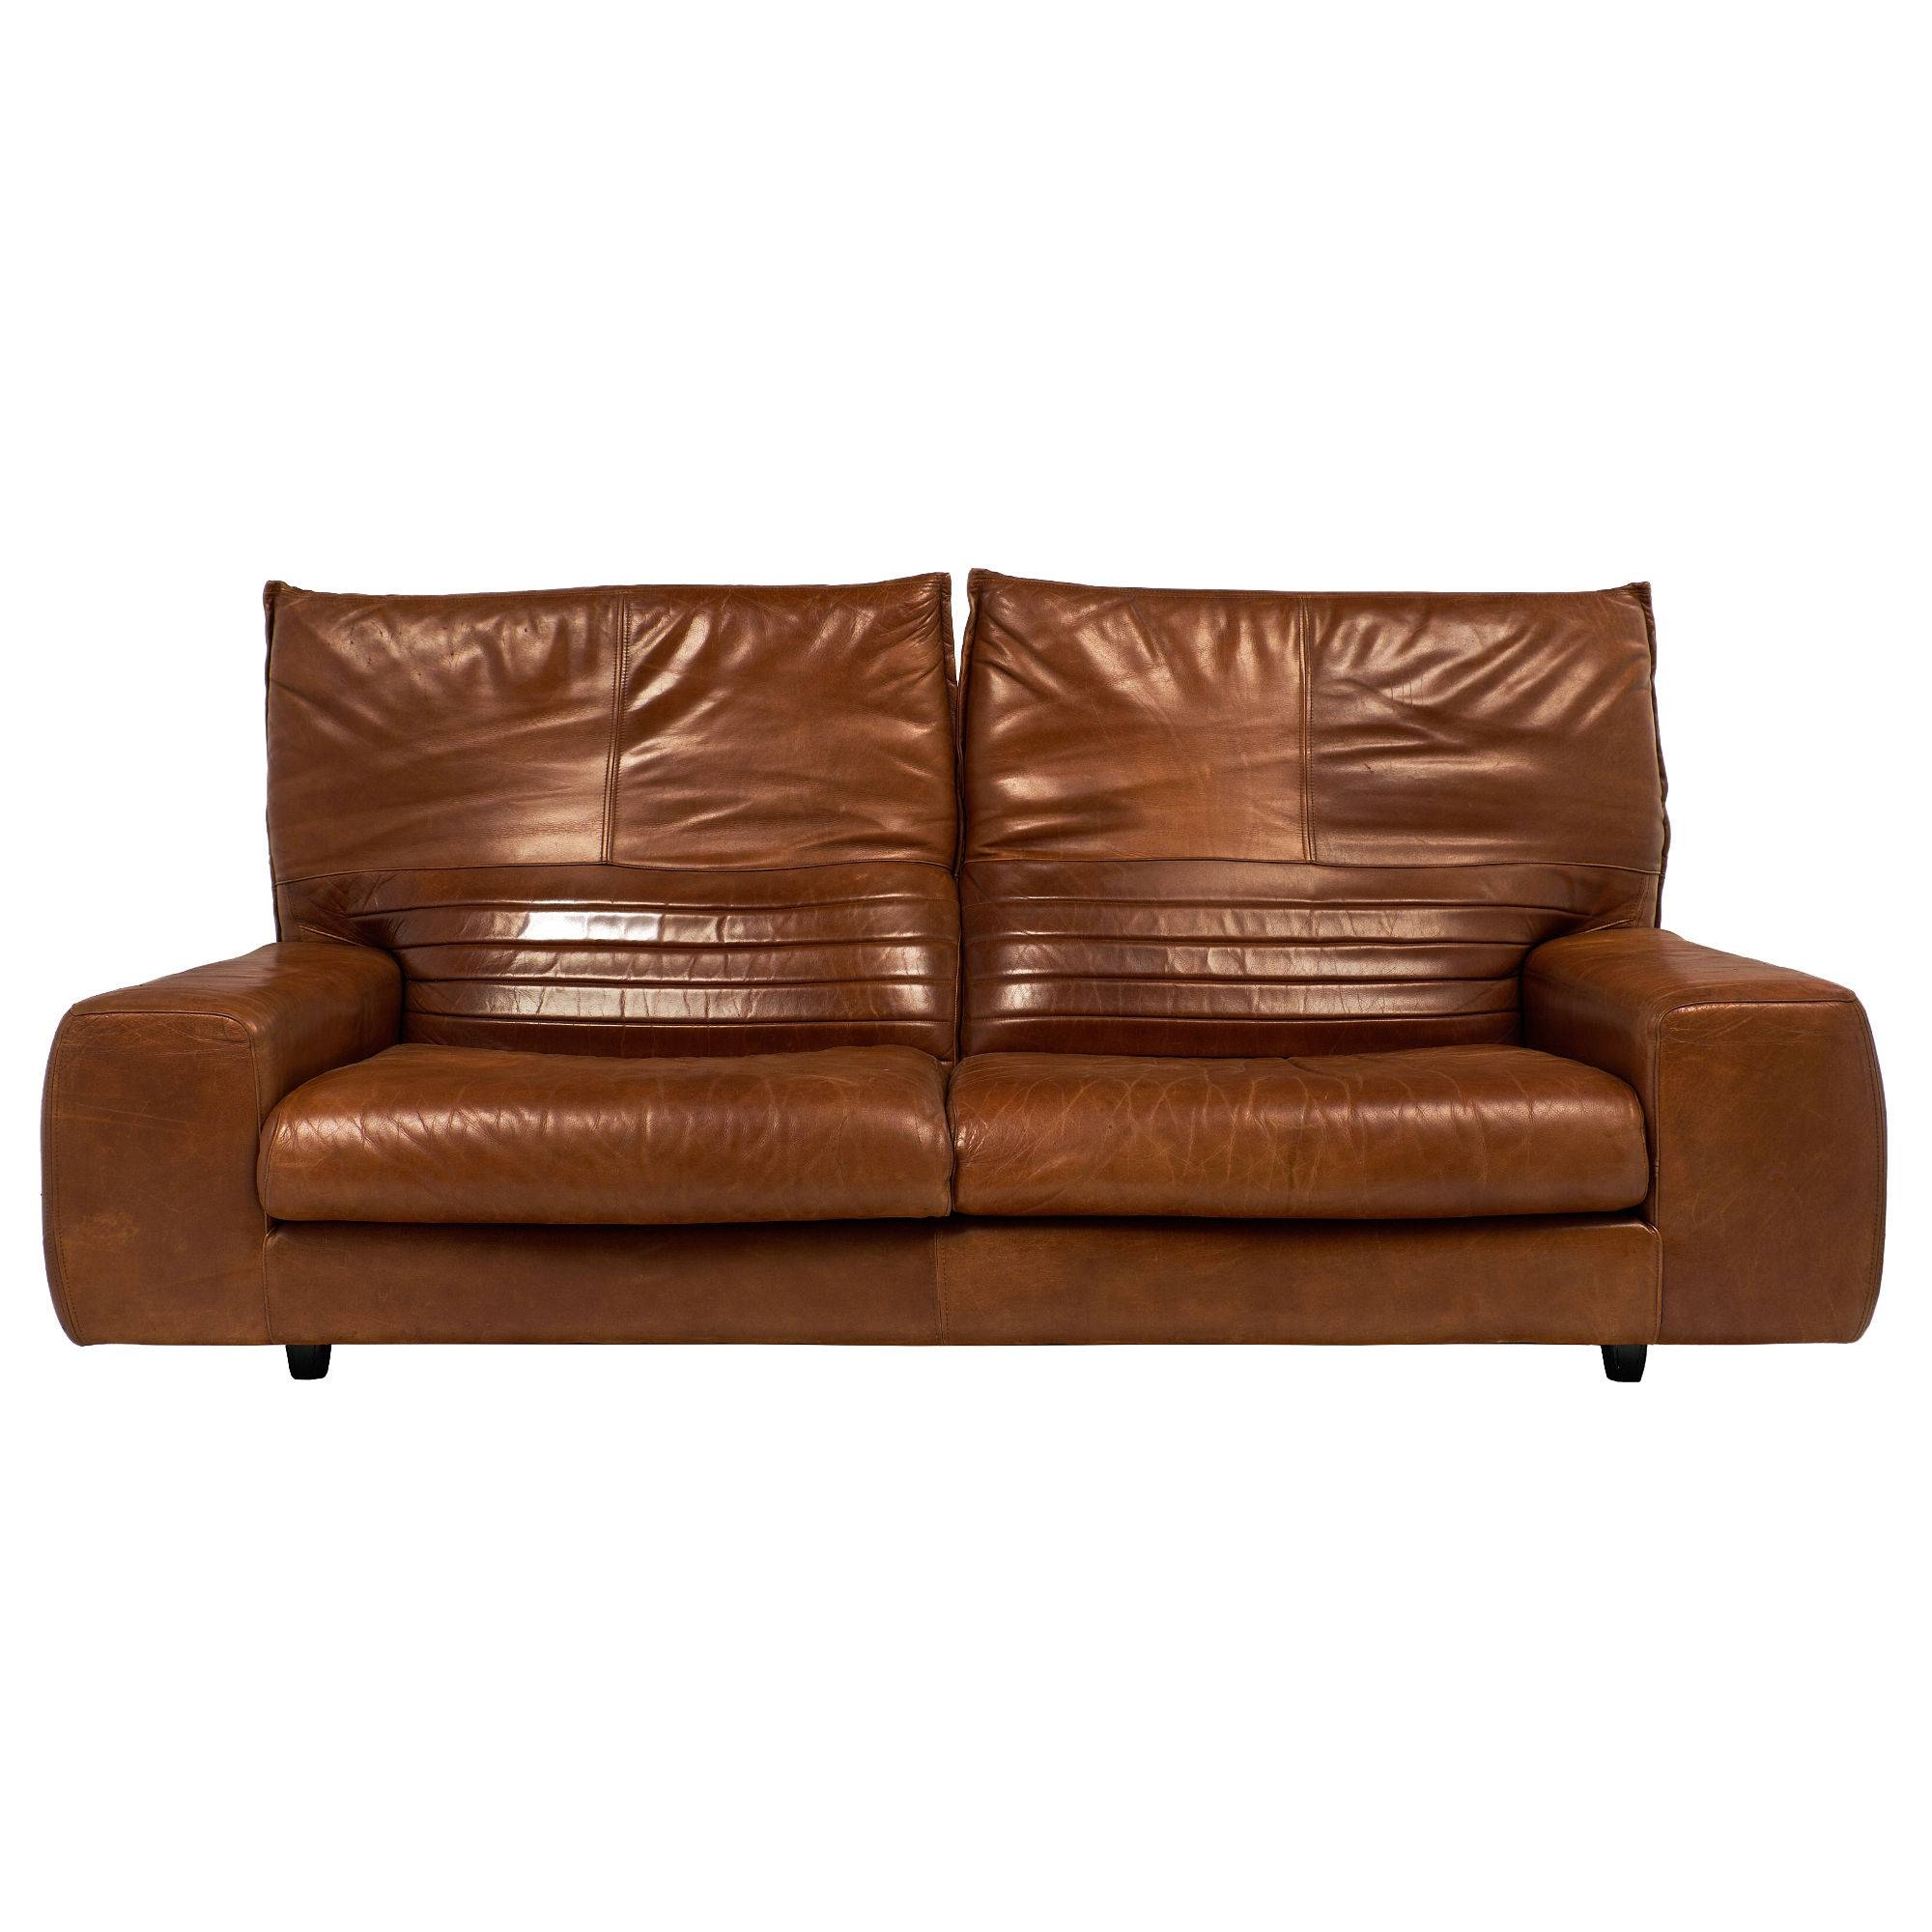 Vintage Italian Leather Sofa With Foldable Back - Jean Marc Fray with regard to Italian Leather Sofas (Image 15 of 15)